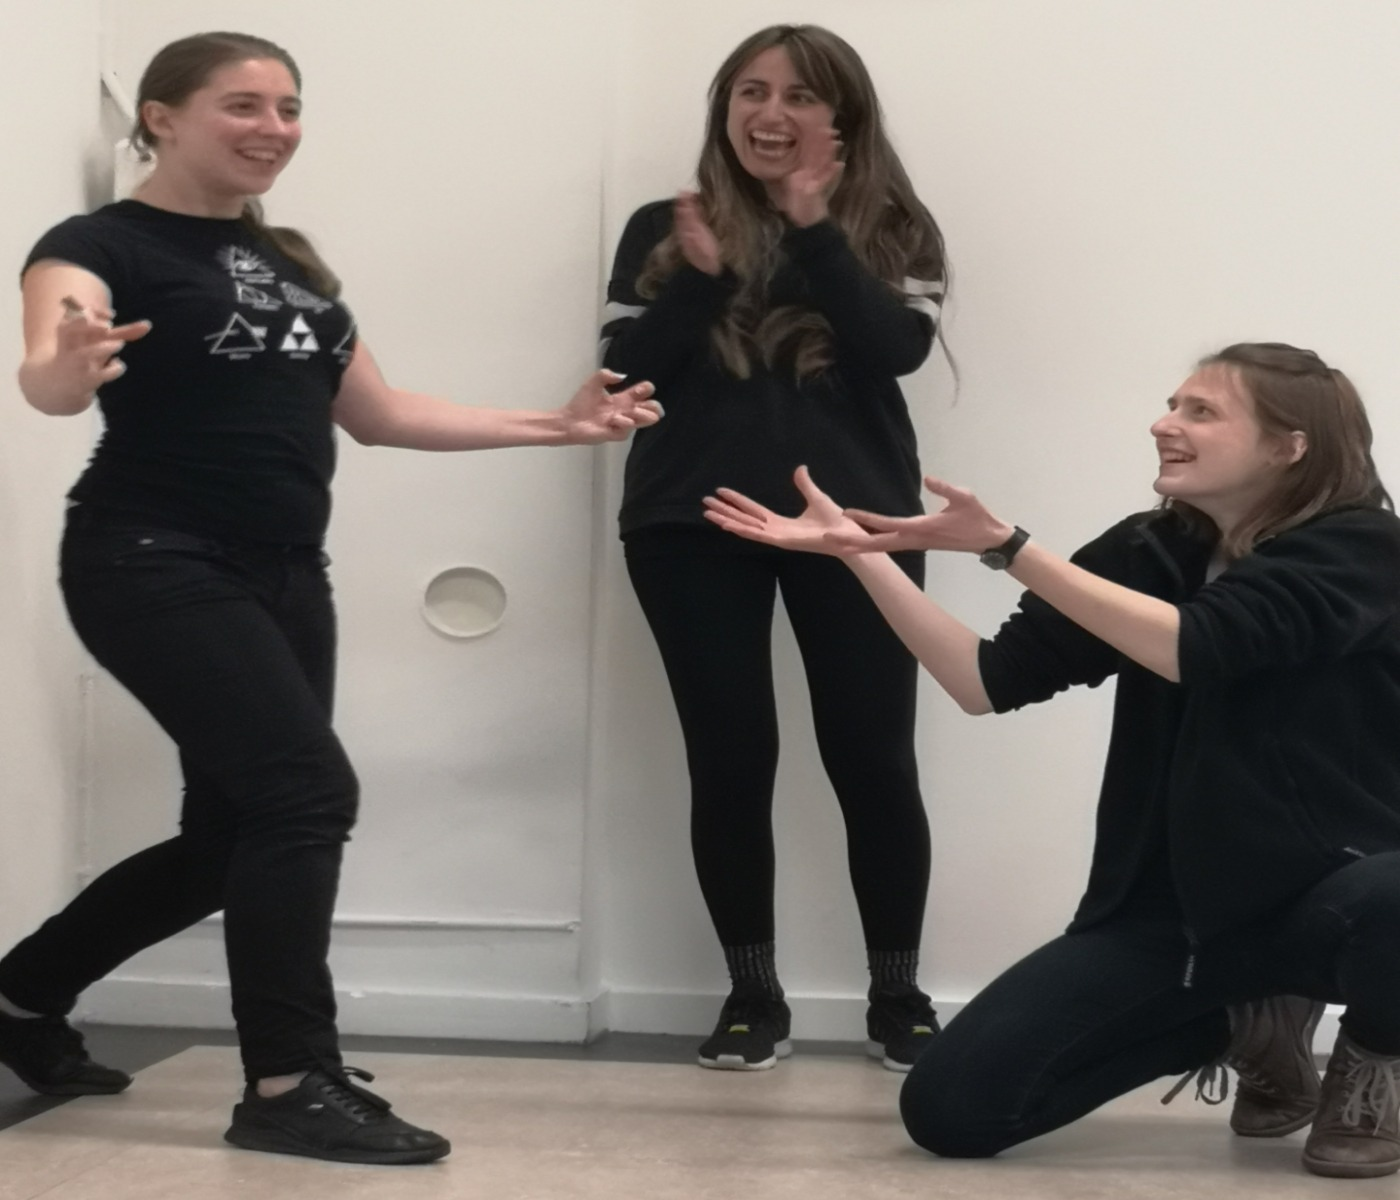 Three Act Attack's students are practicing. They are three women wearing black clothes. They are all laughing. Two stand, of which one is clapping, and the other is walking with open arms. The third is kneeled while reaching out towards her walking mate.